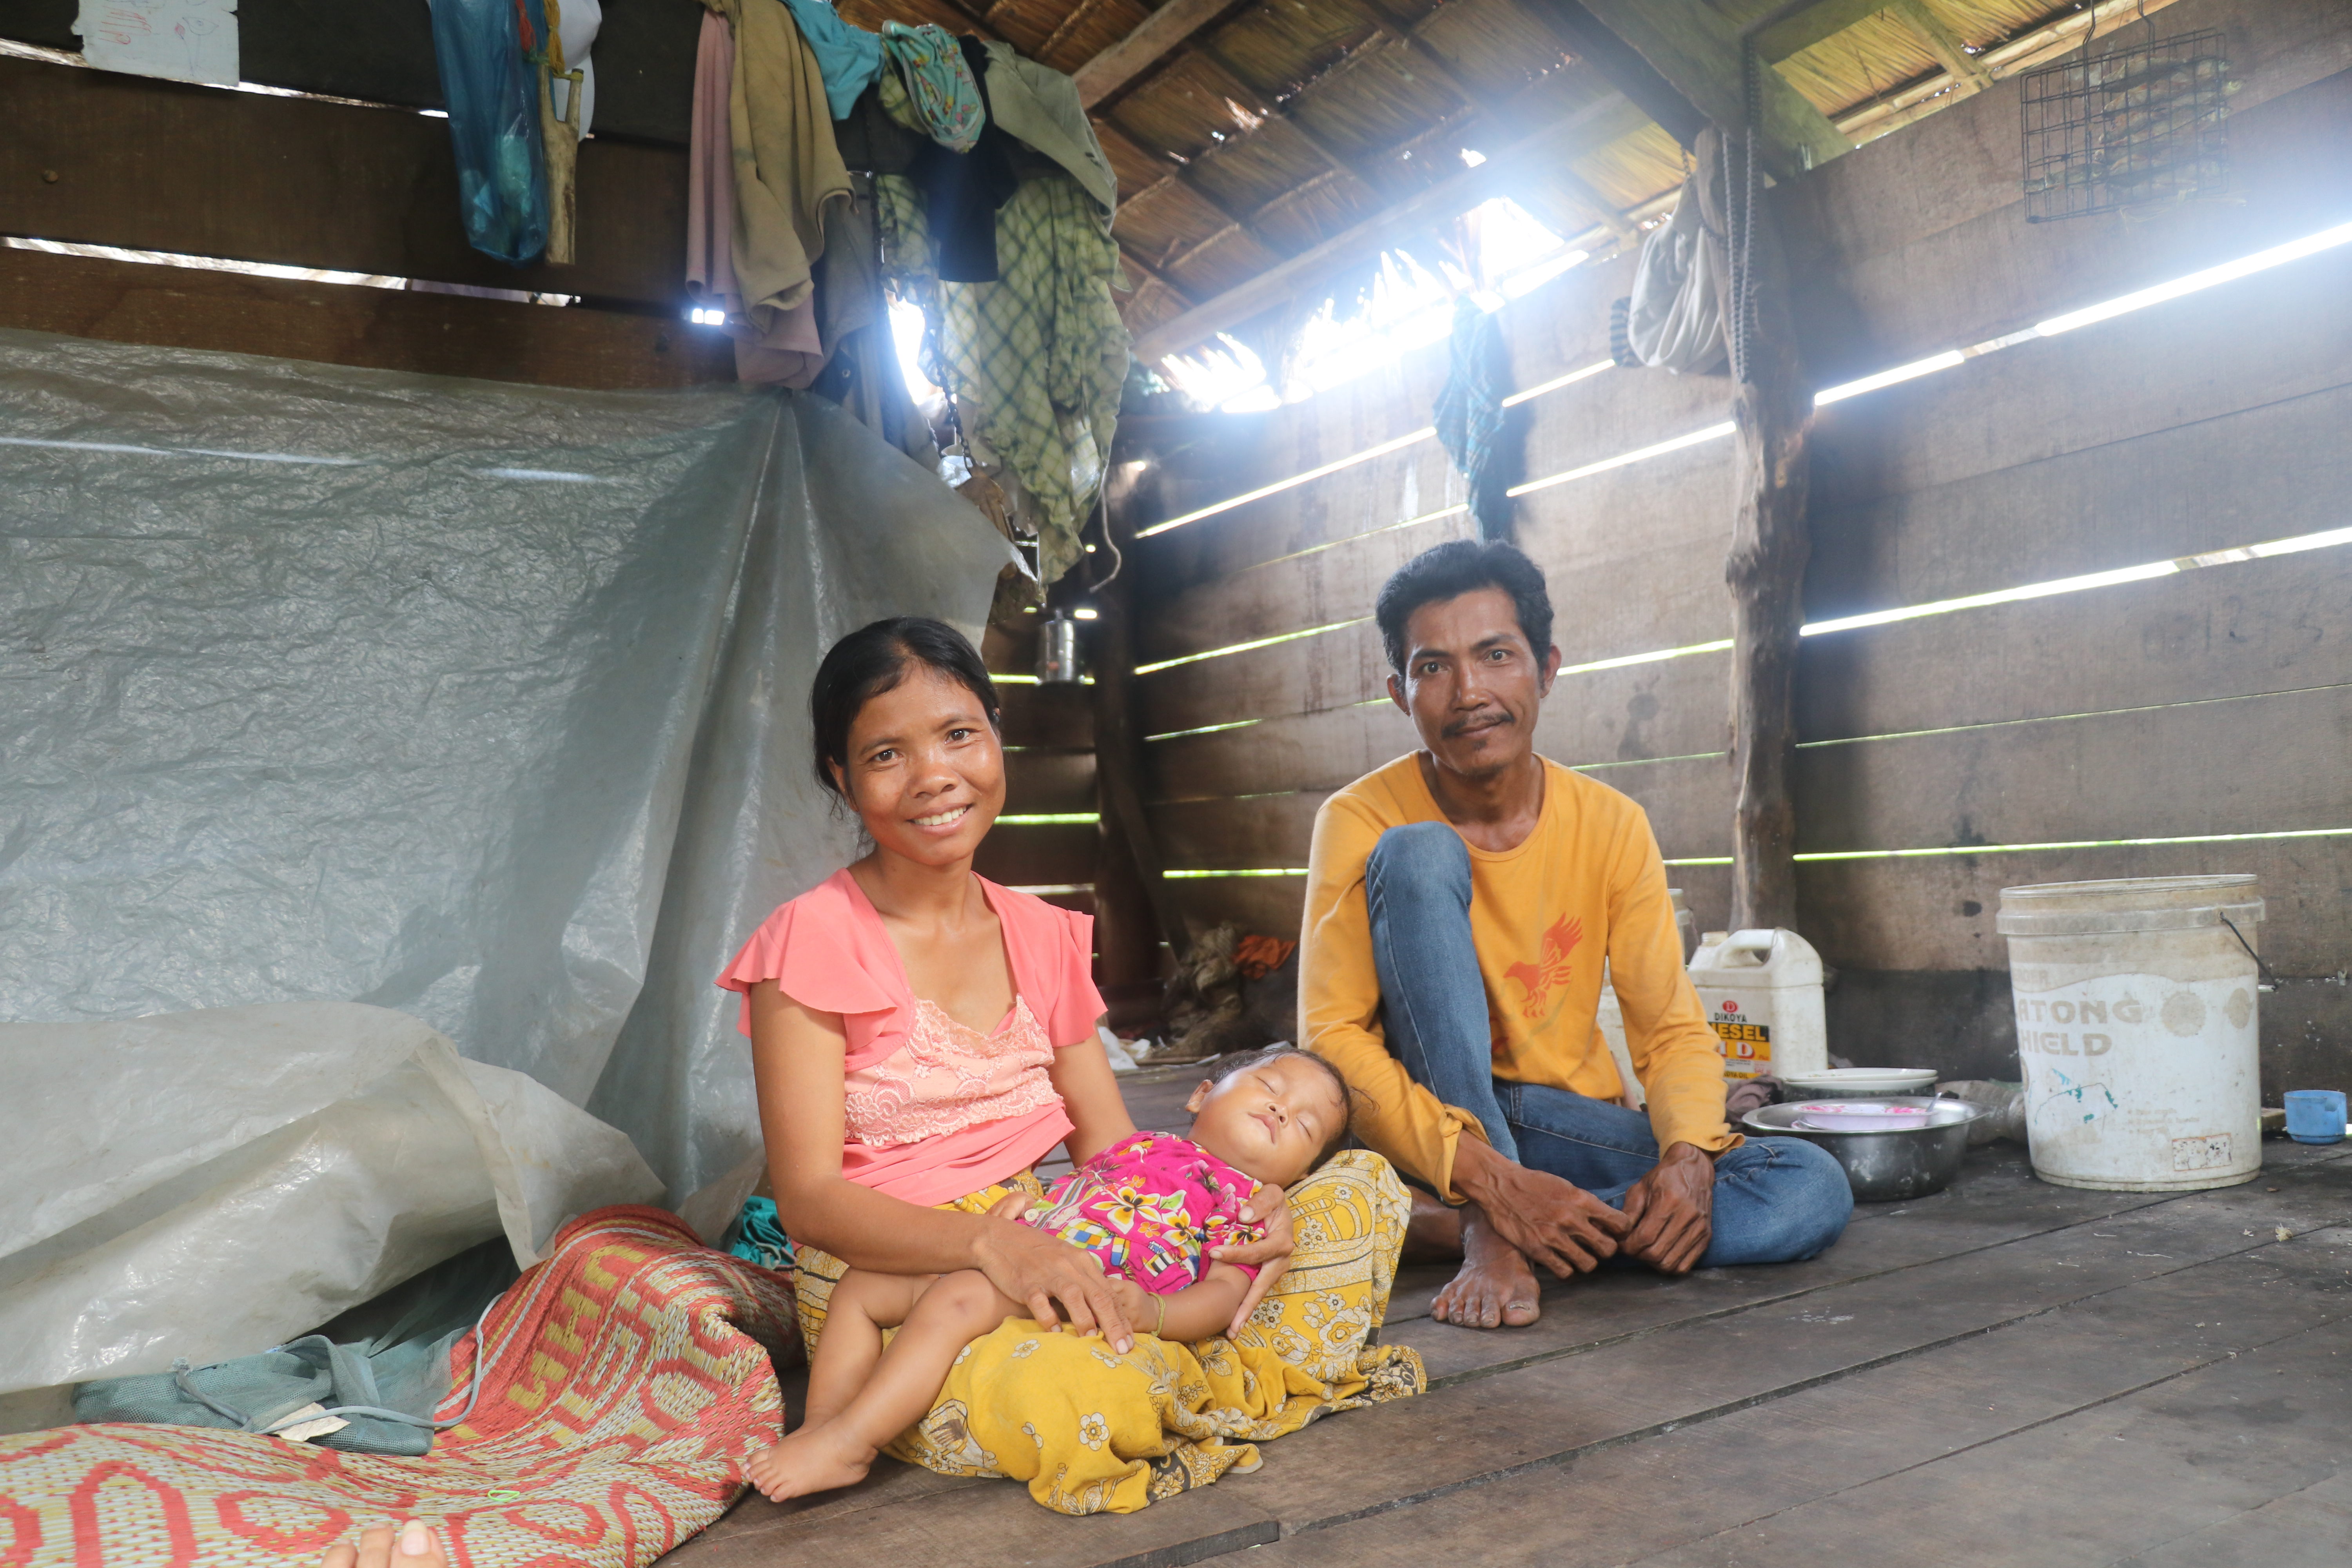 Bora and her husband (Bit Ban) at their home in a rural village of Cambodia